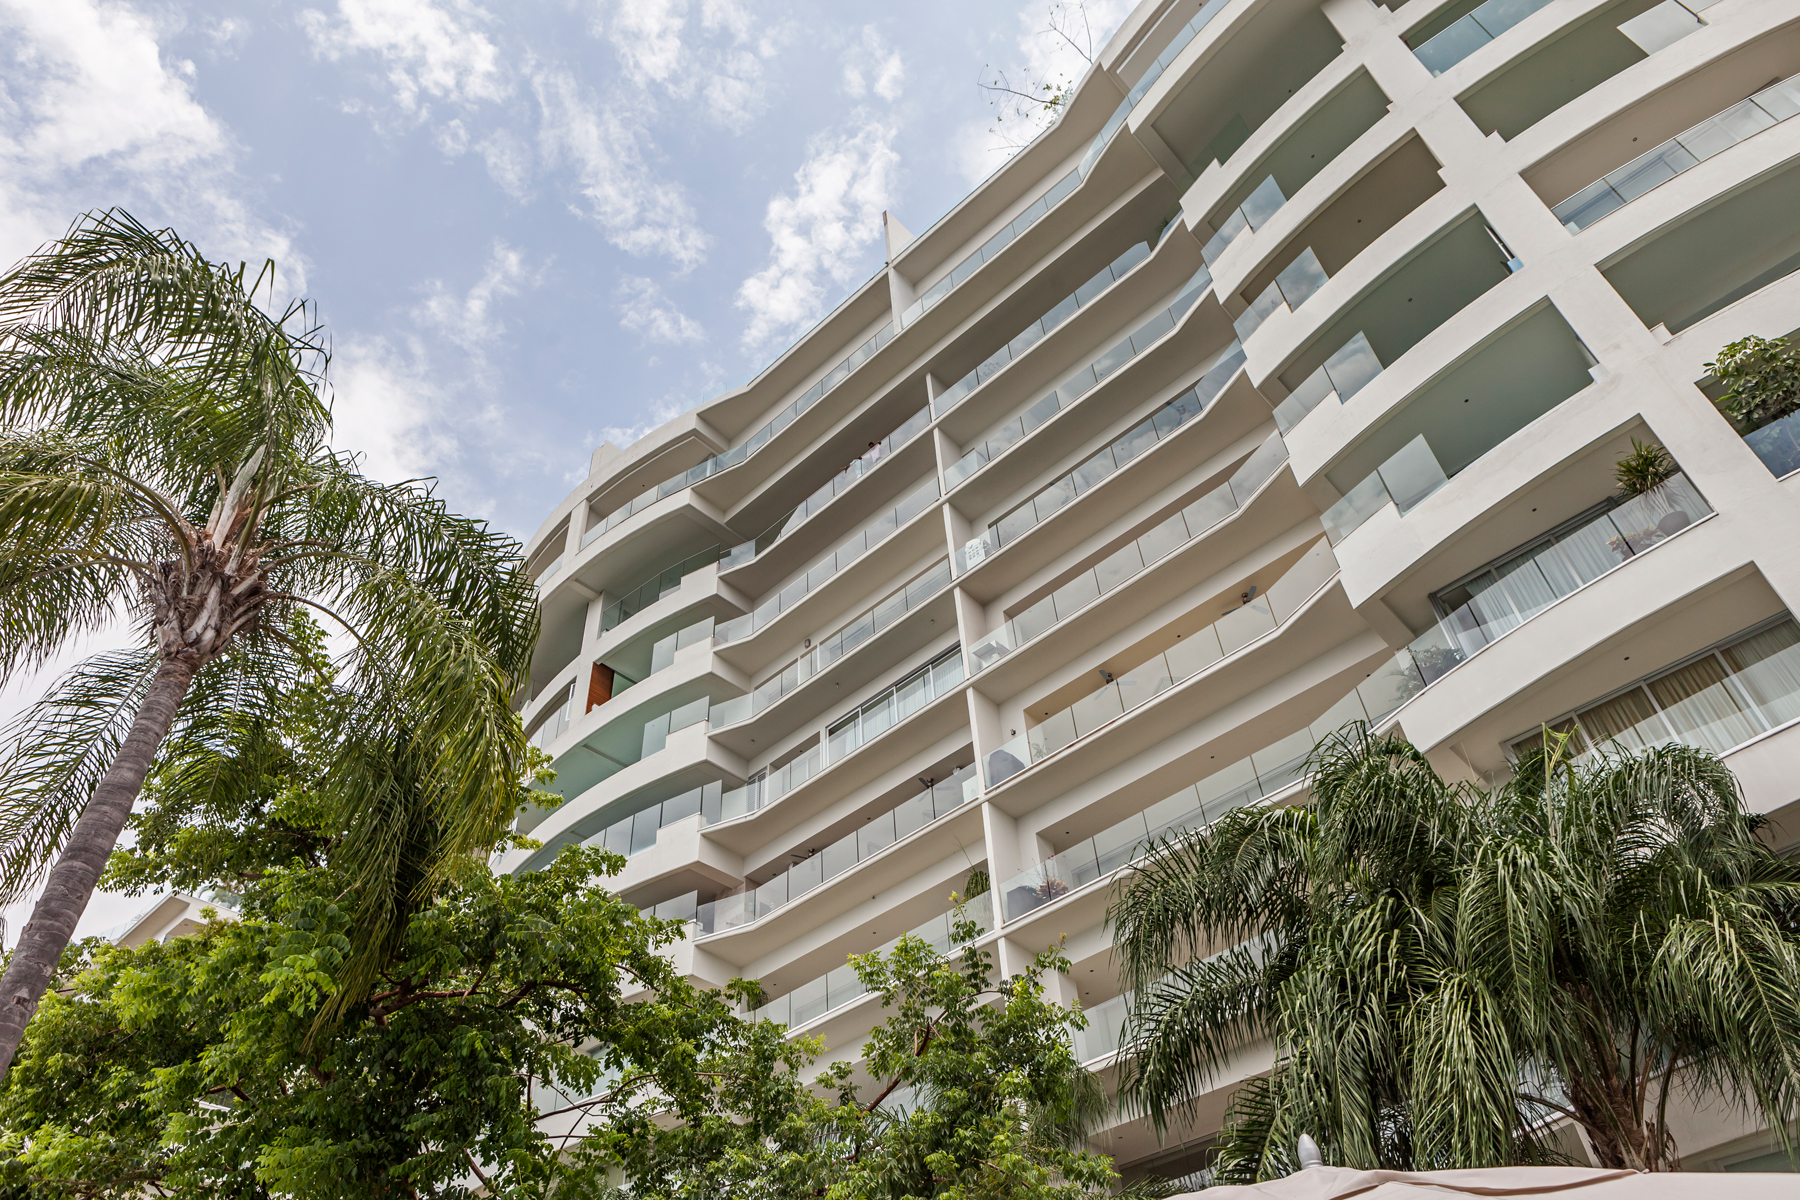 Apartment for Sale at Avalon 202, Luxury Apartment in Puerto Vallarta Torre Avalon, Depto 202 Calle Gardenias 248 Puerto Vallarta, 48399 Mexico